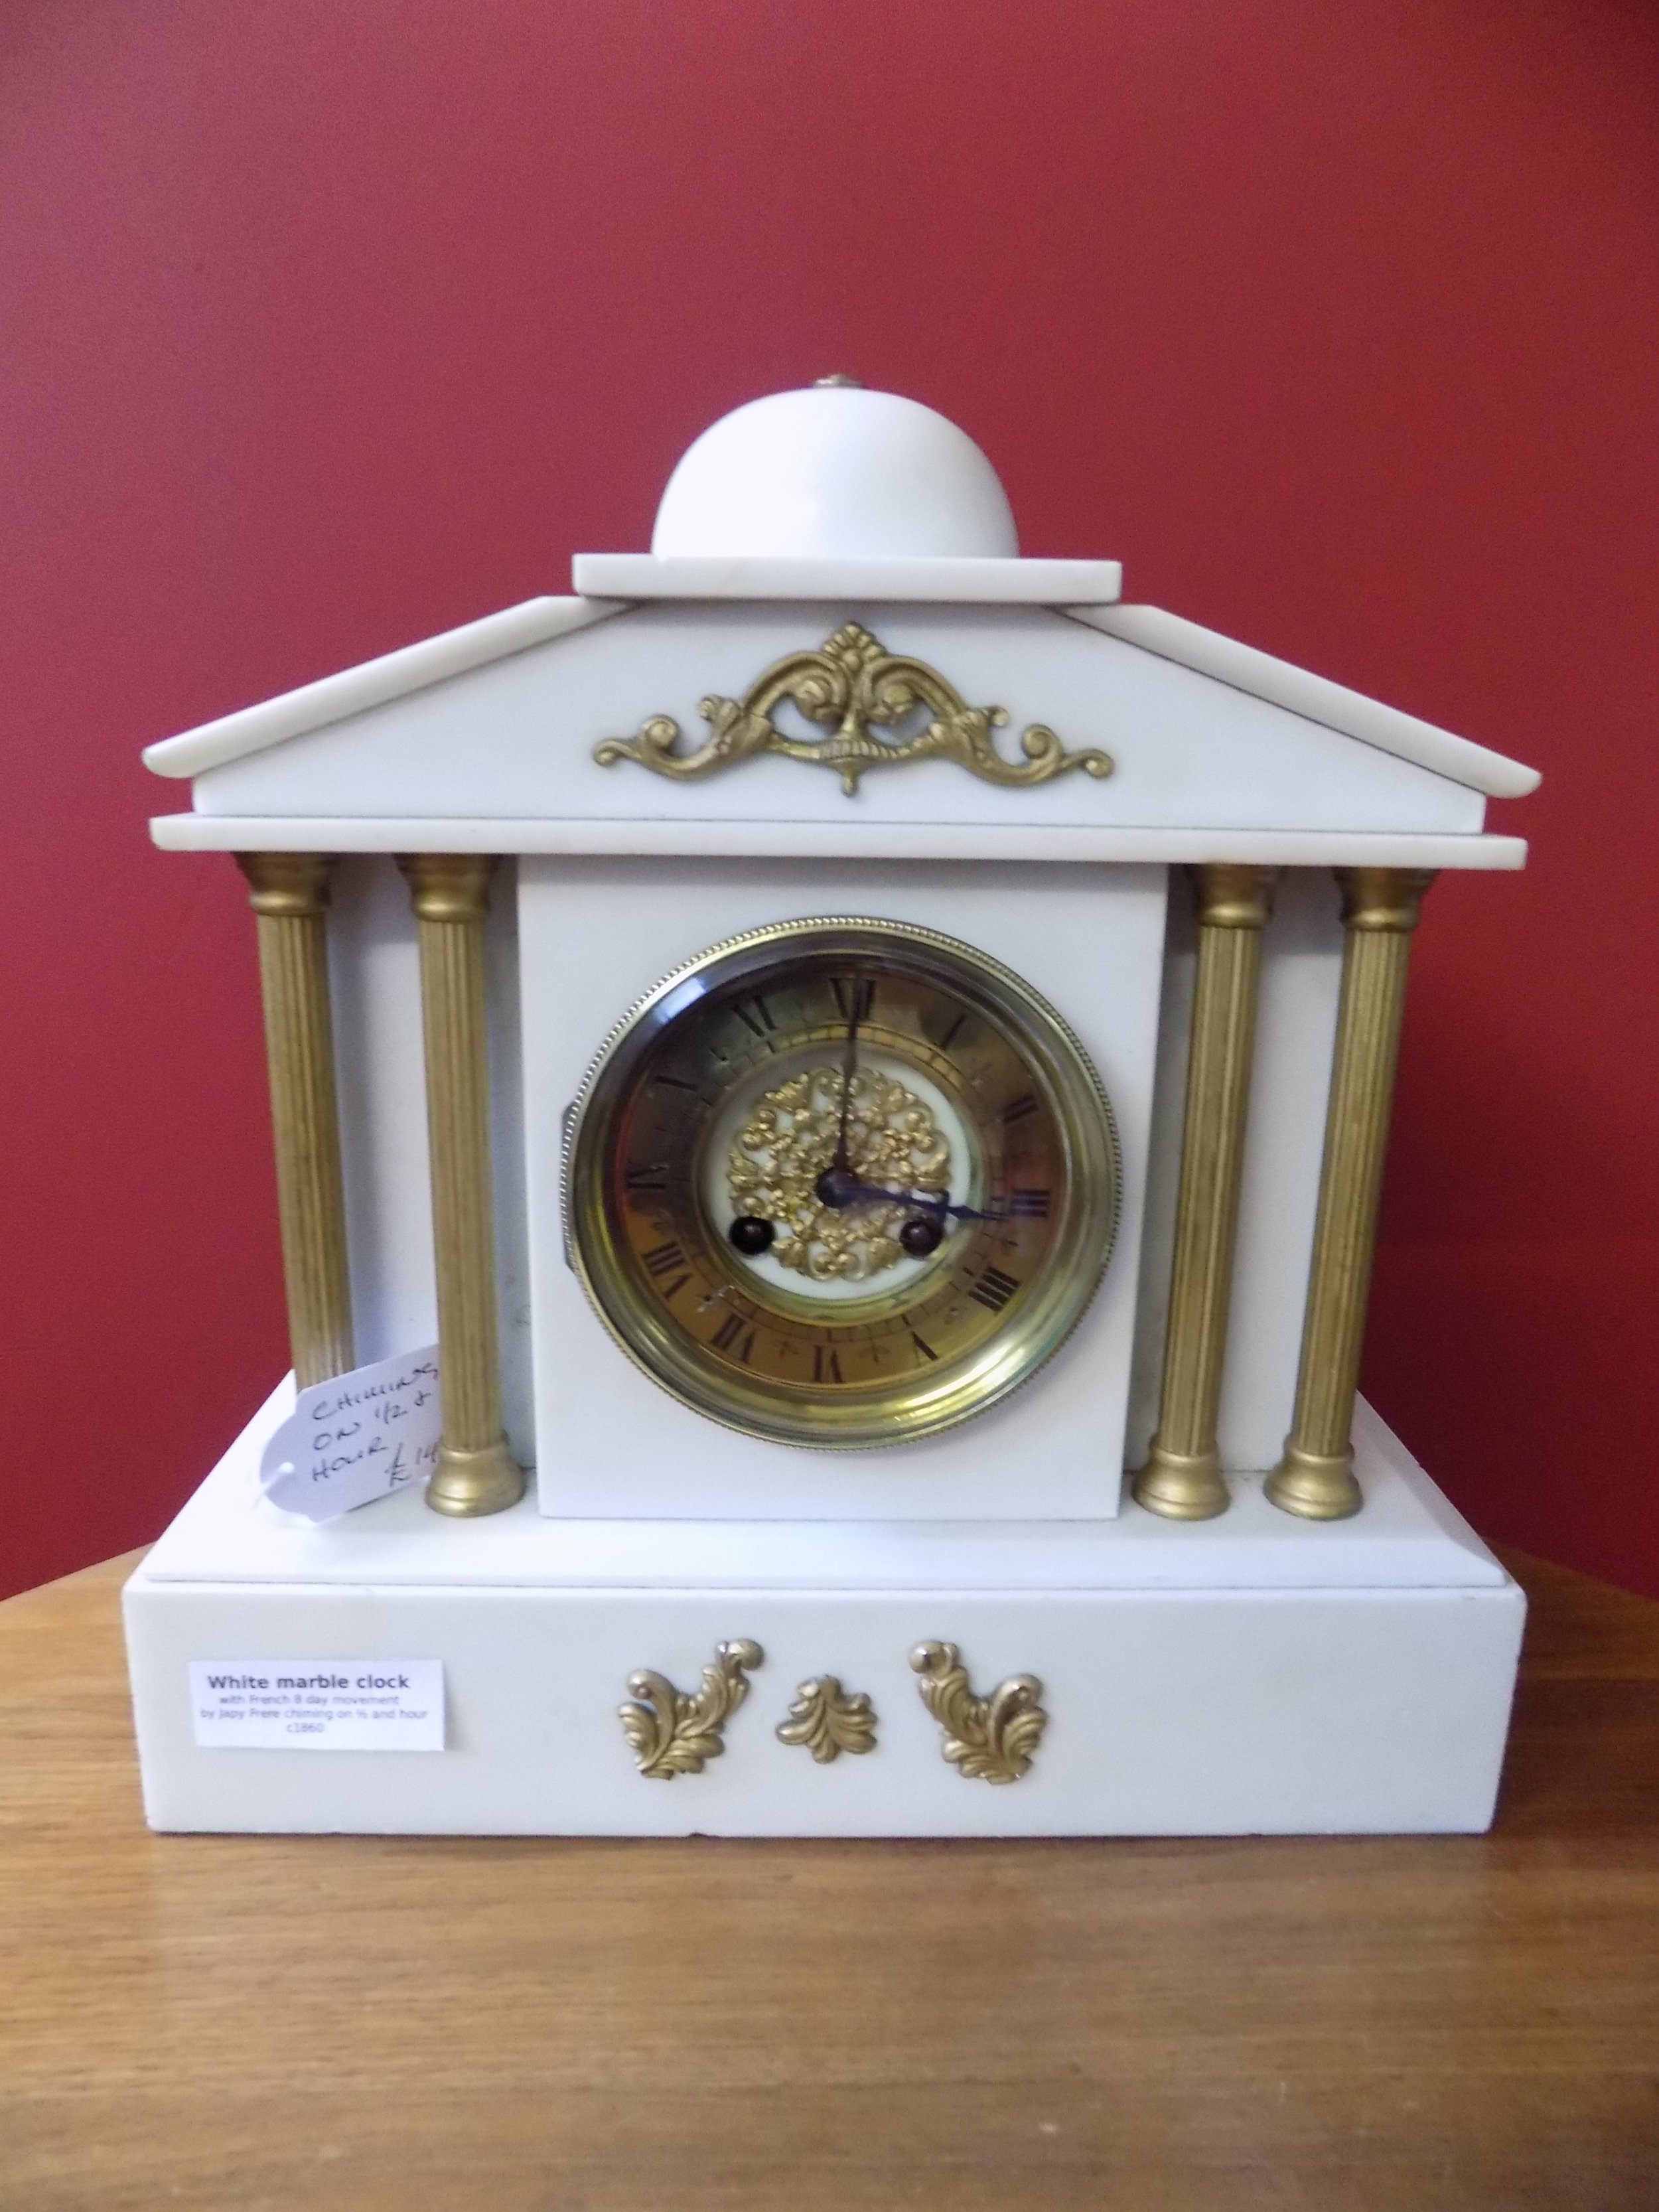 19th century white marble mantel clock by Japy Frere £140.00